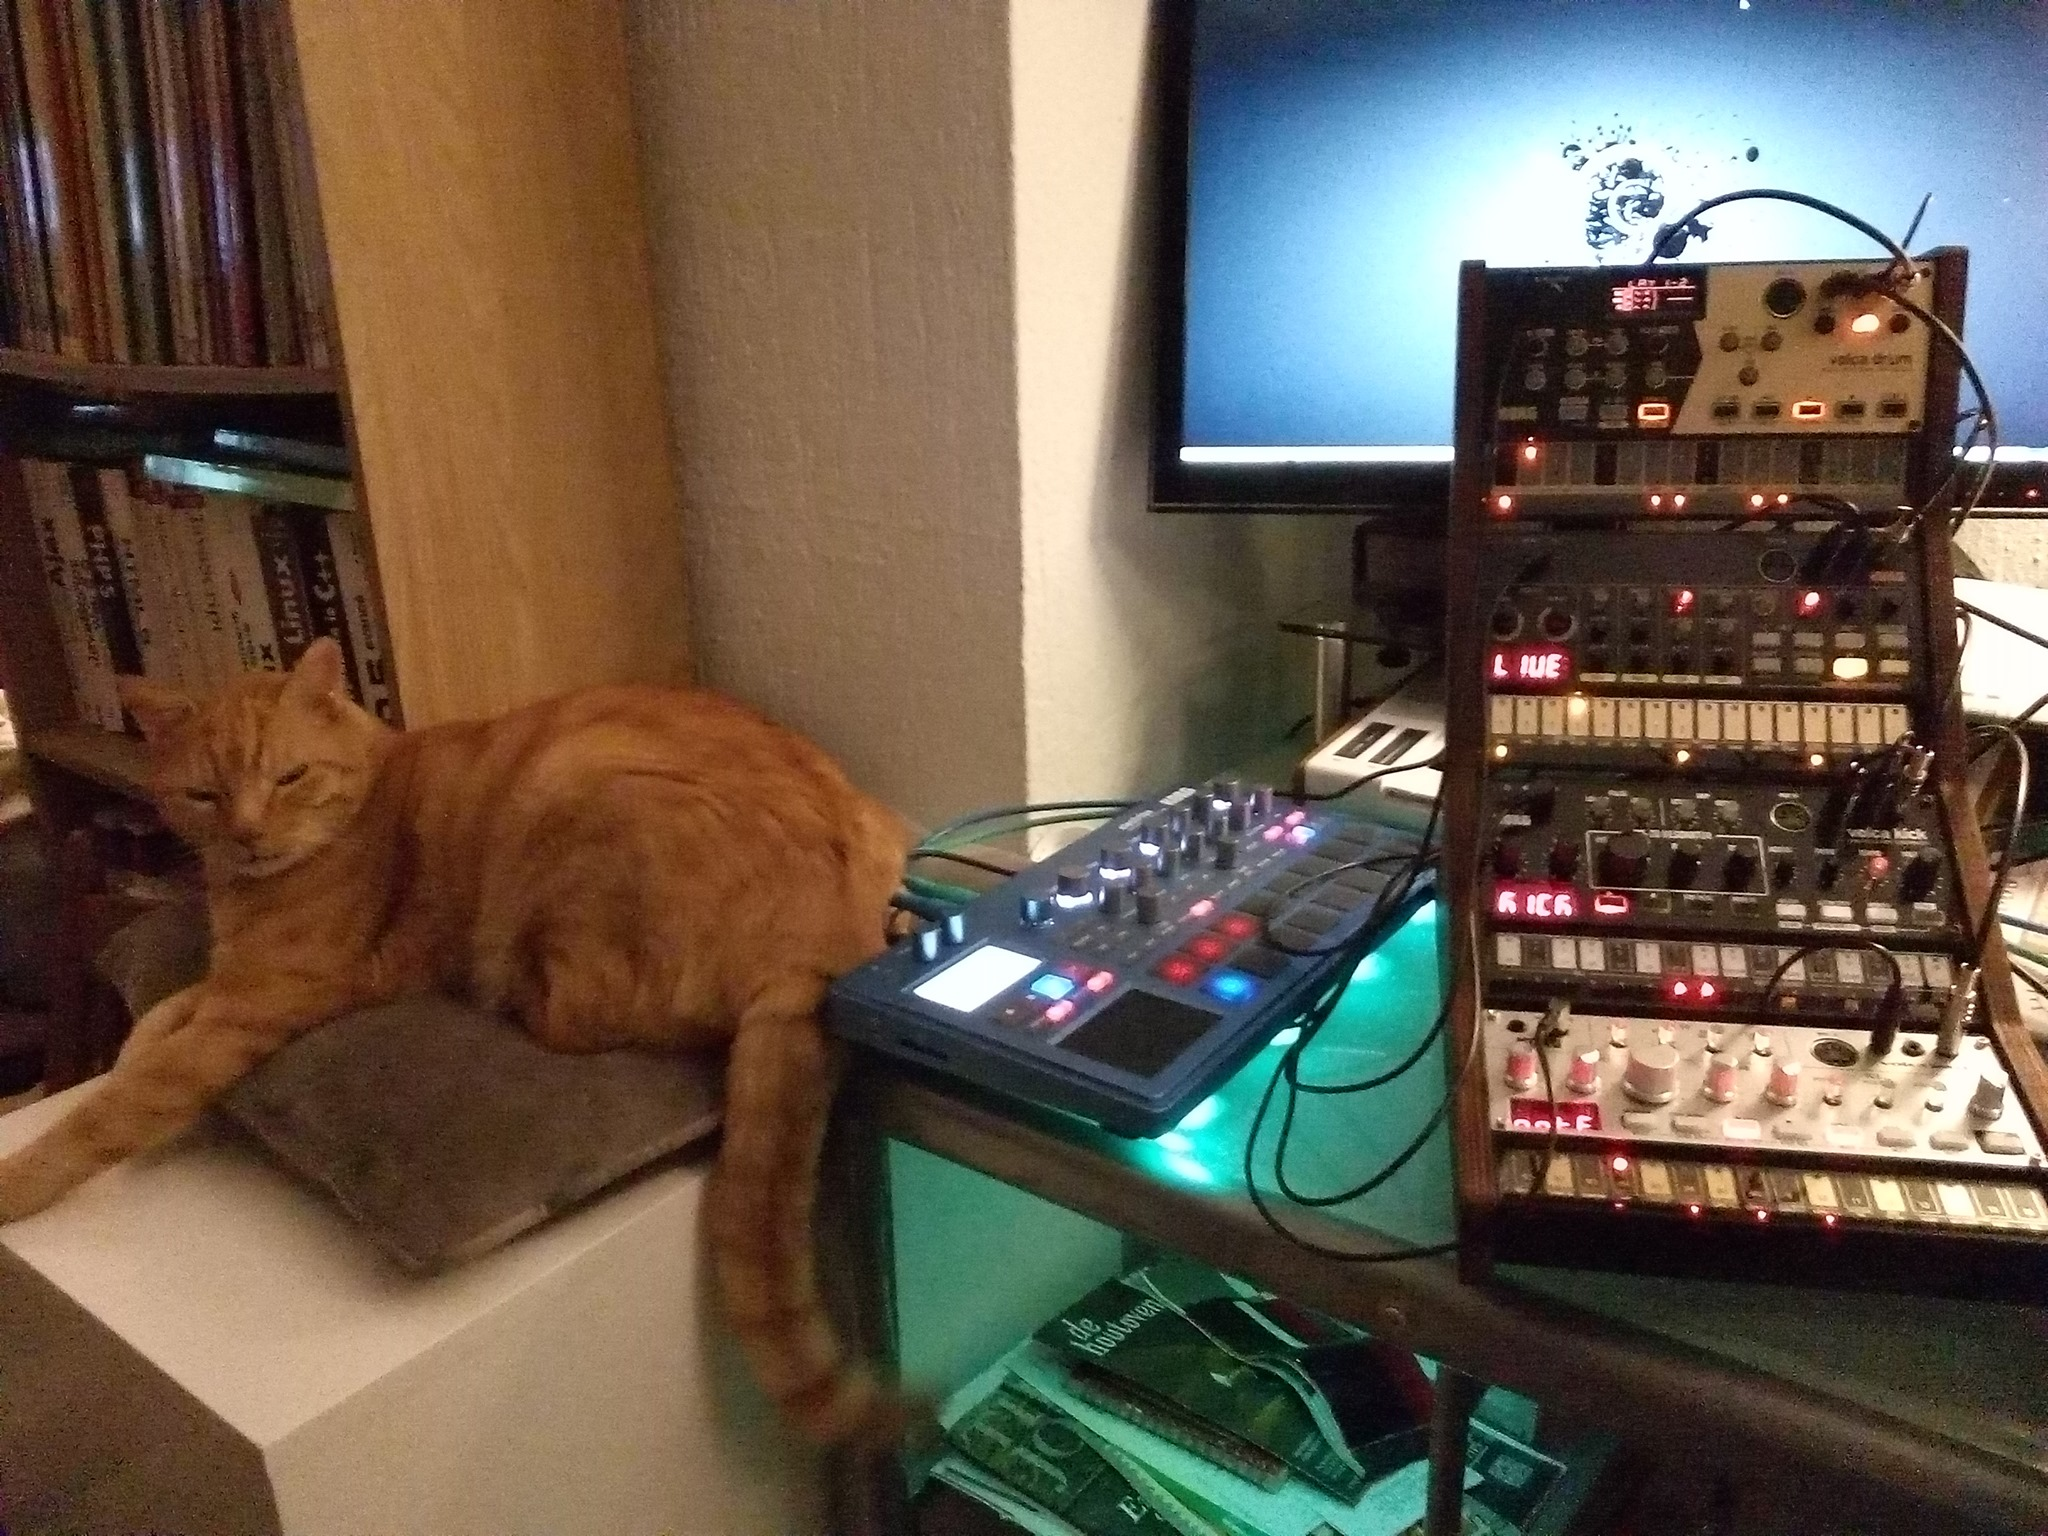 CatSynth Pic: Tower of Volca